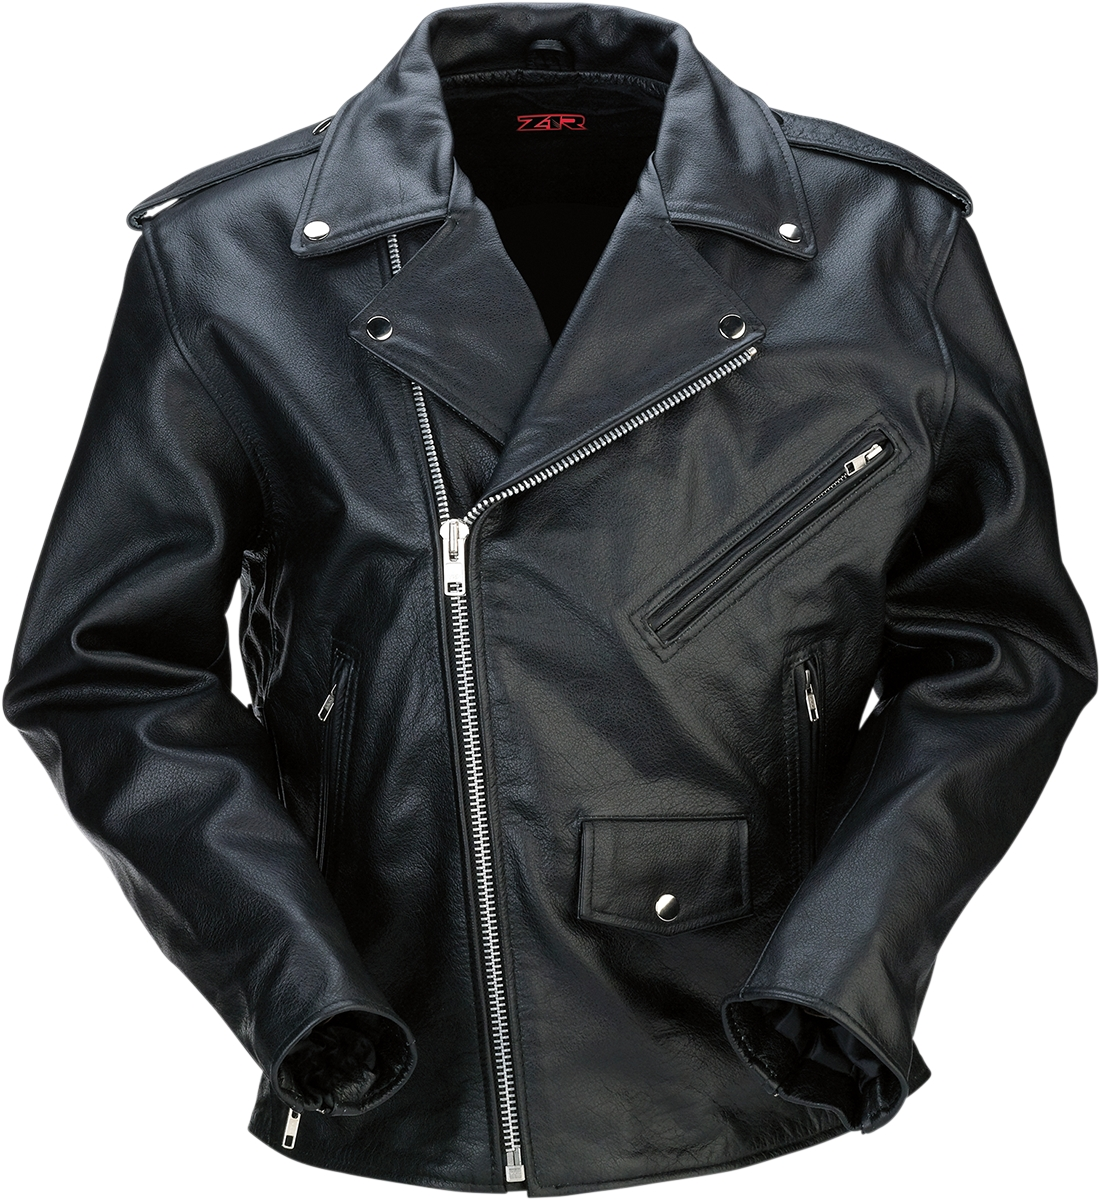 Z1R Women's 9mm Leather Jacket